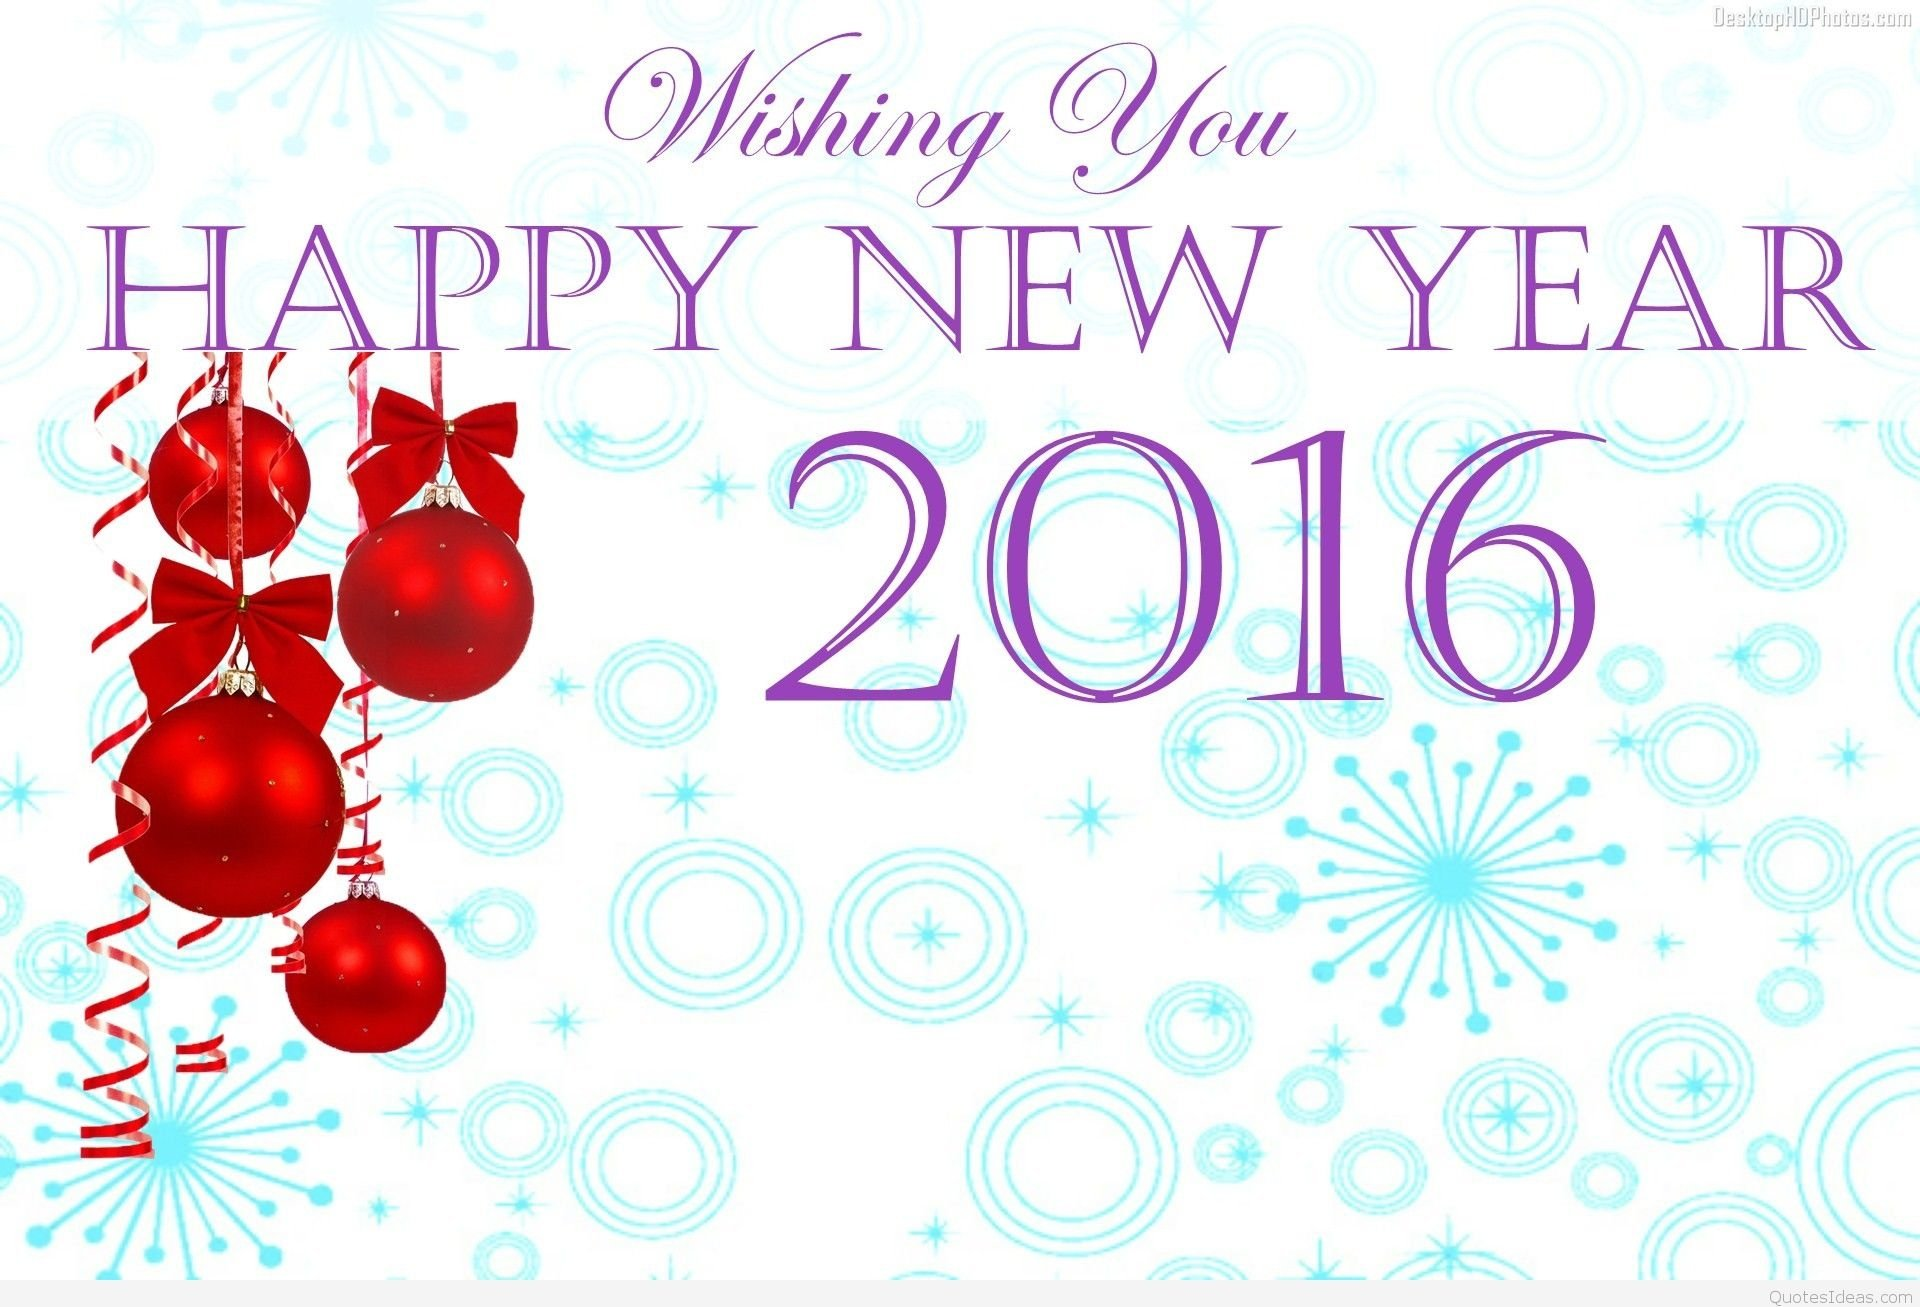 New Year 2016 Hd Wallpaper Background Image 1920x1307 Id